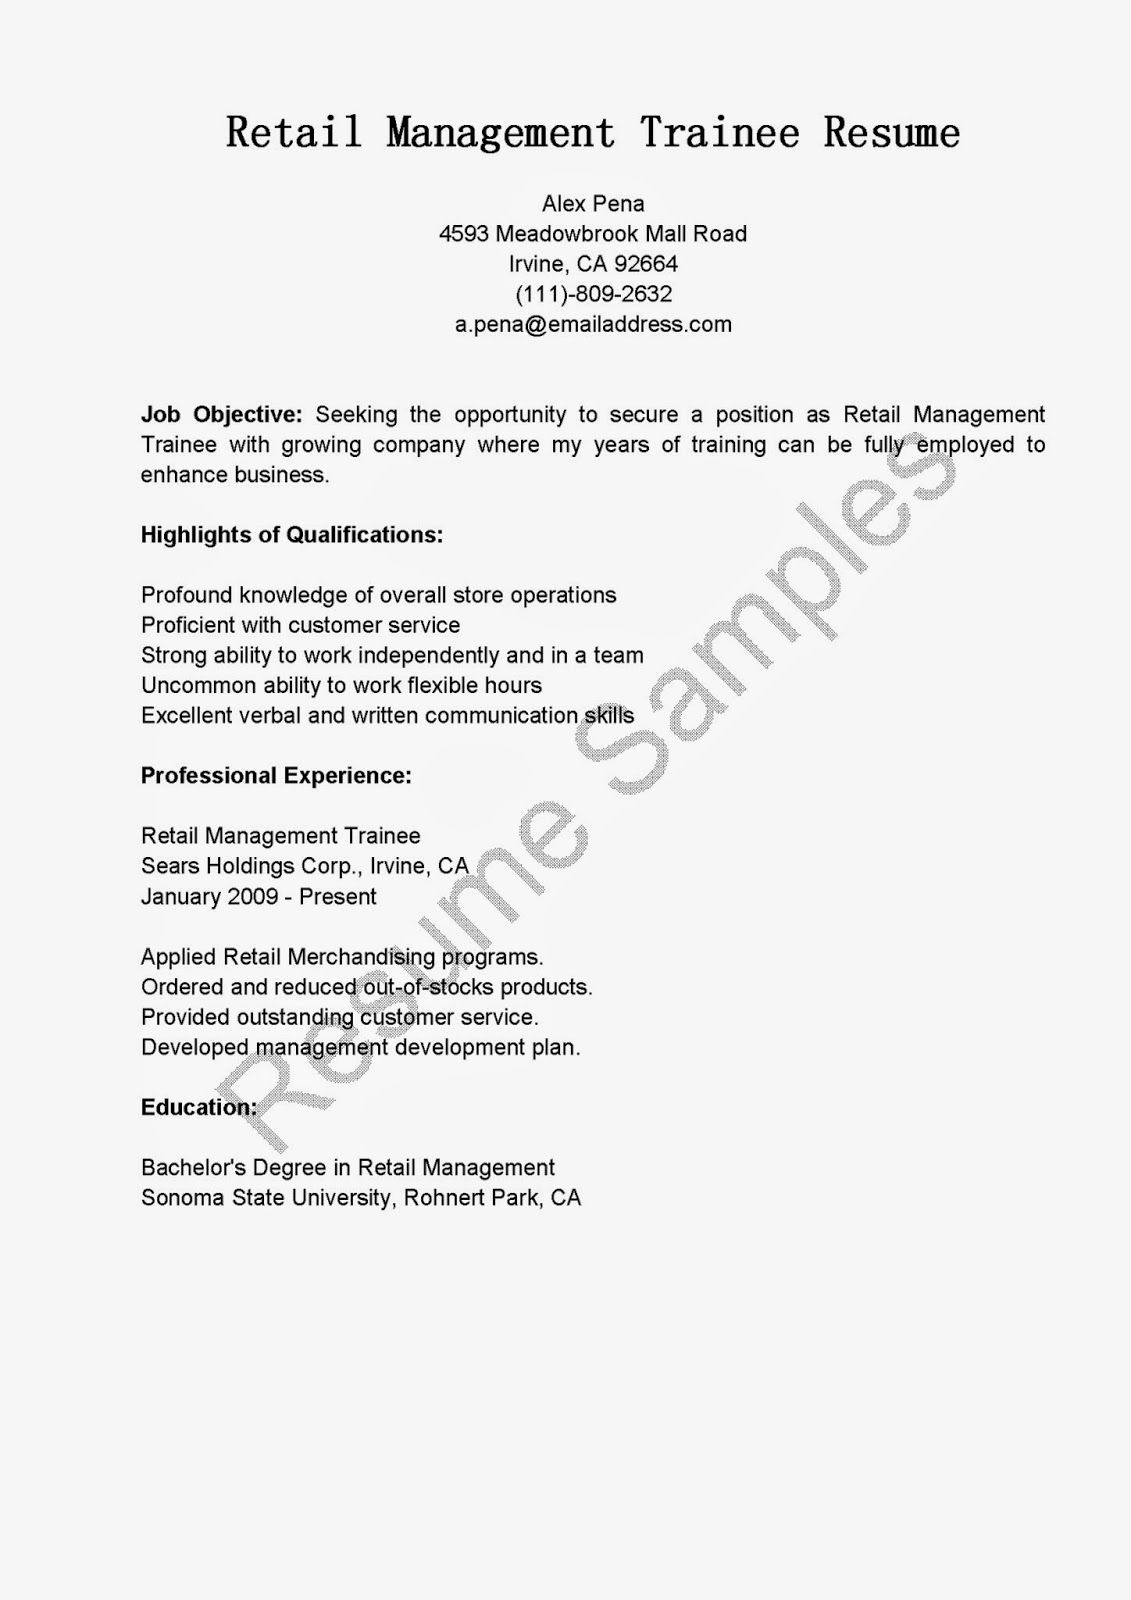 retail management trainee resume sample format for construction objective examples Resume Resume Format For Management Trainee